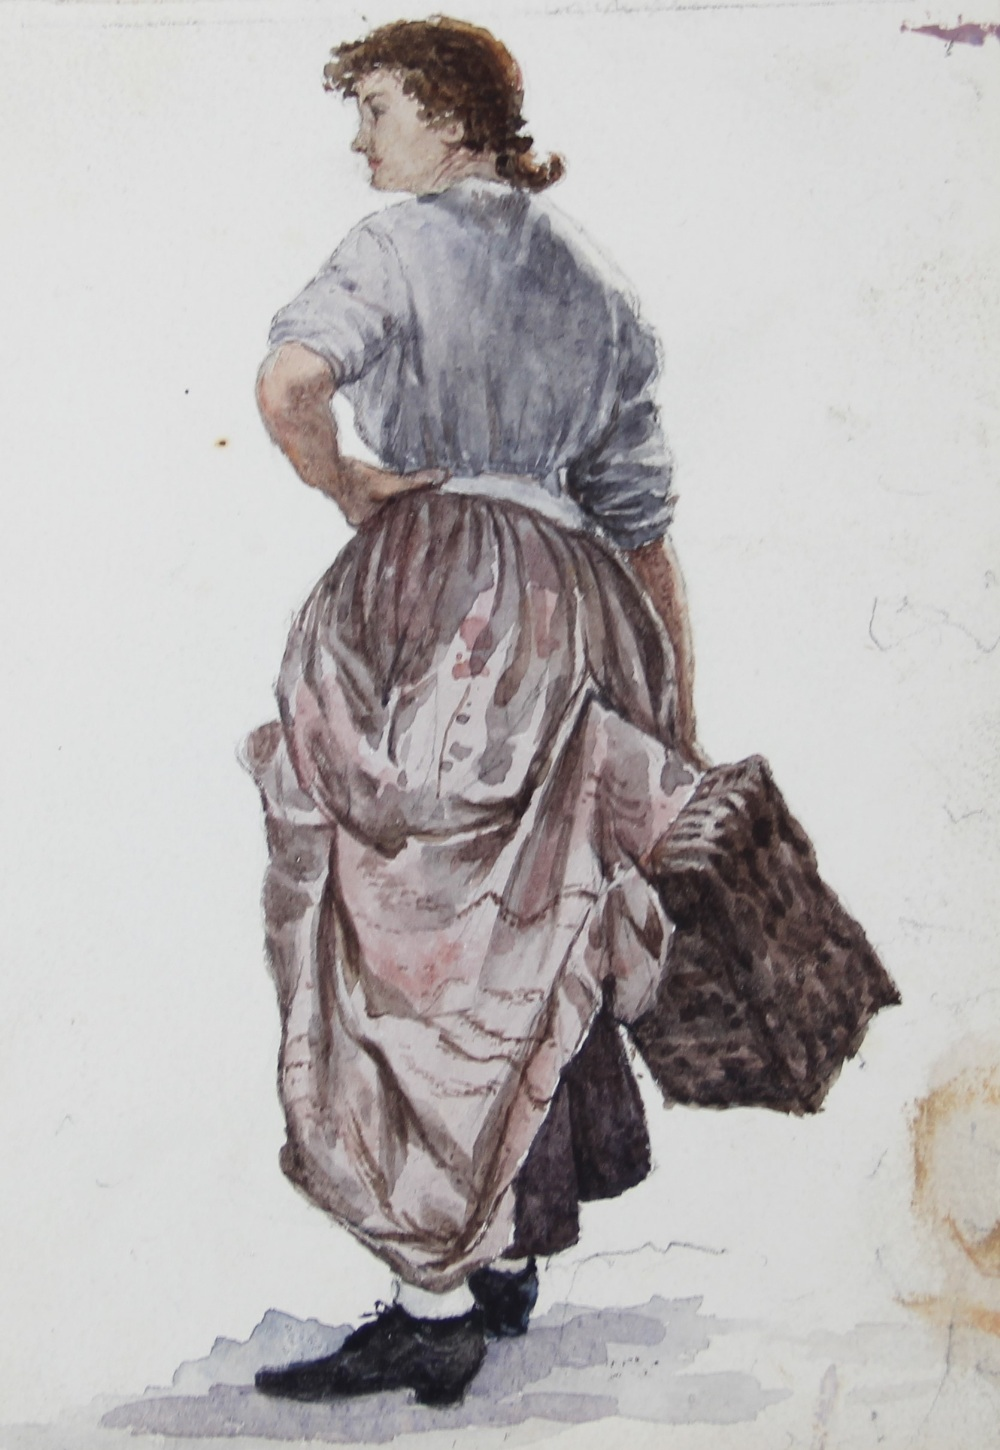 A collection of watercolours, pen and ink sketches and pencil sketches, early 20th century, loose, - Image 8 of 10